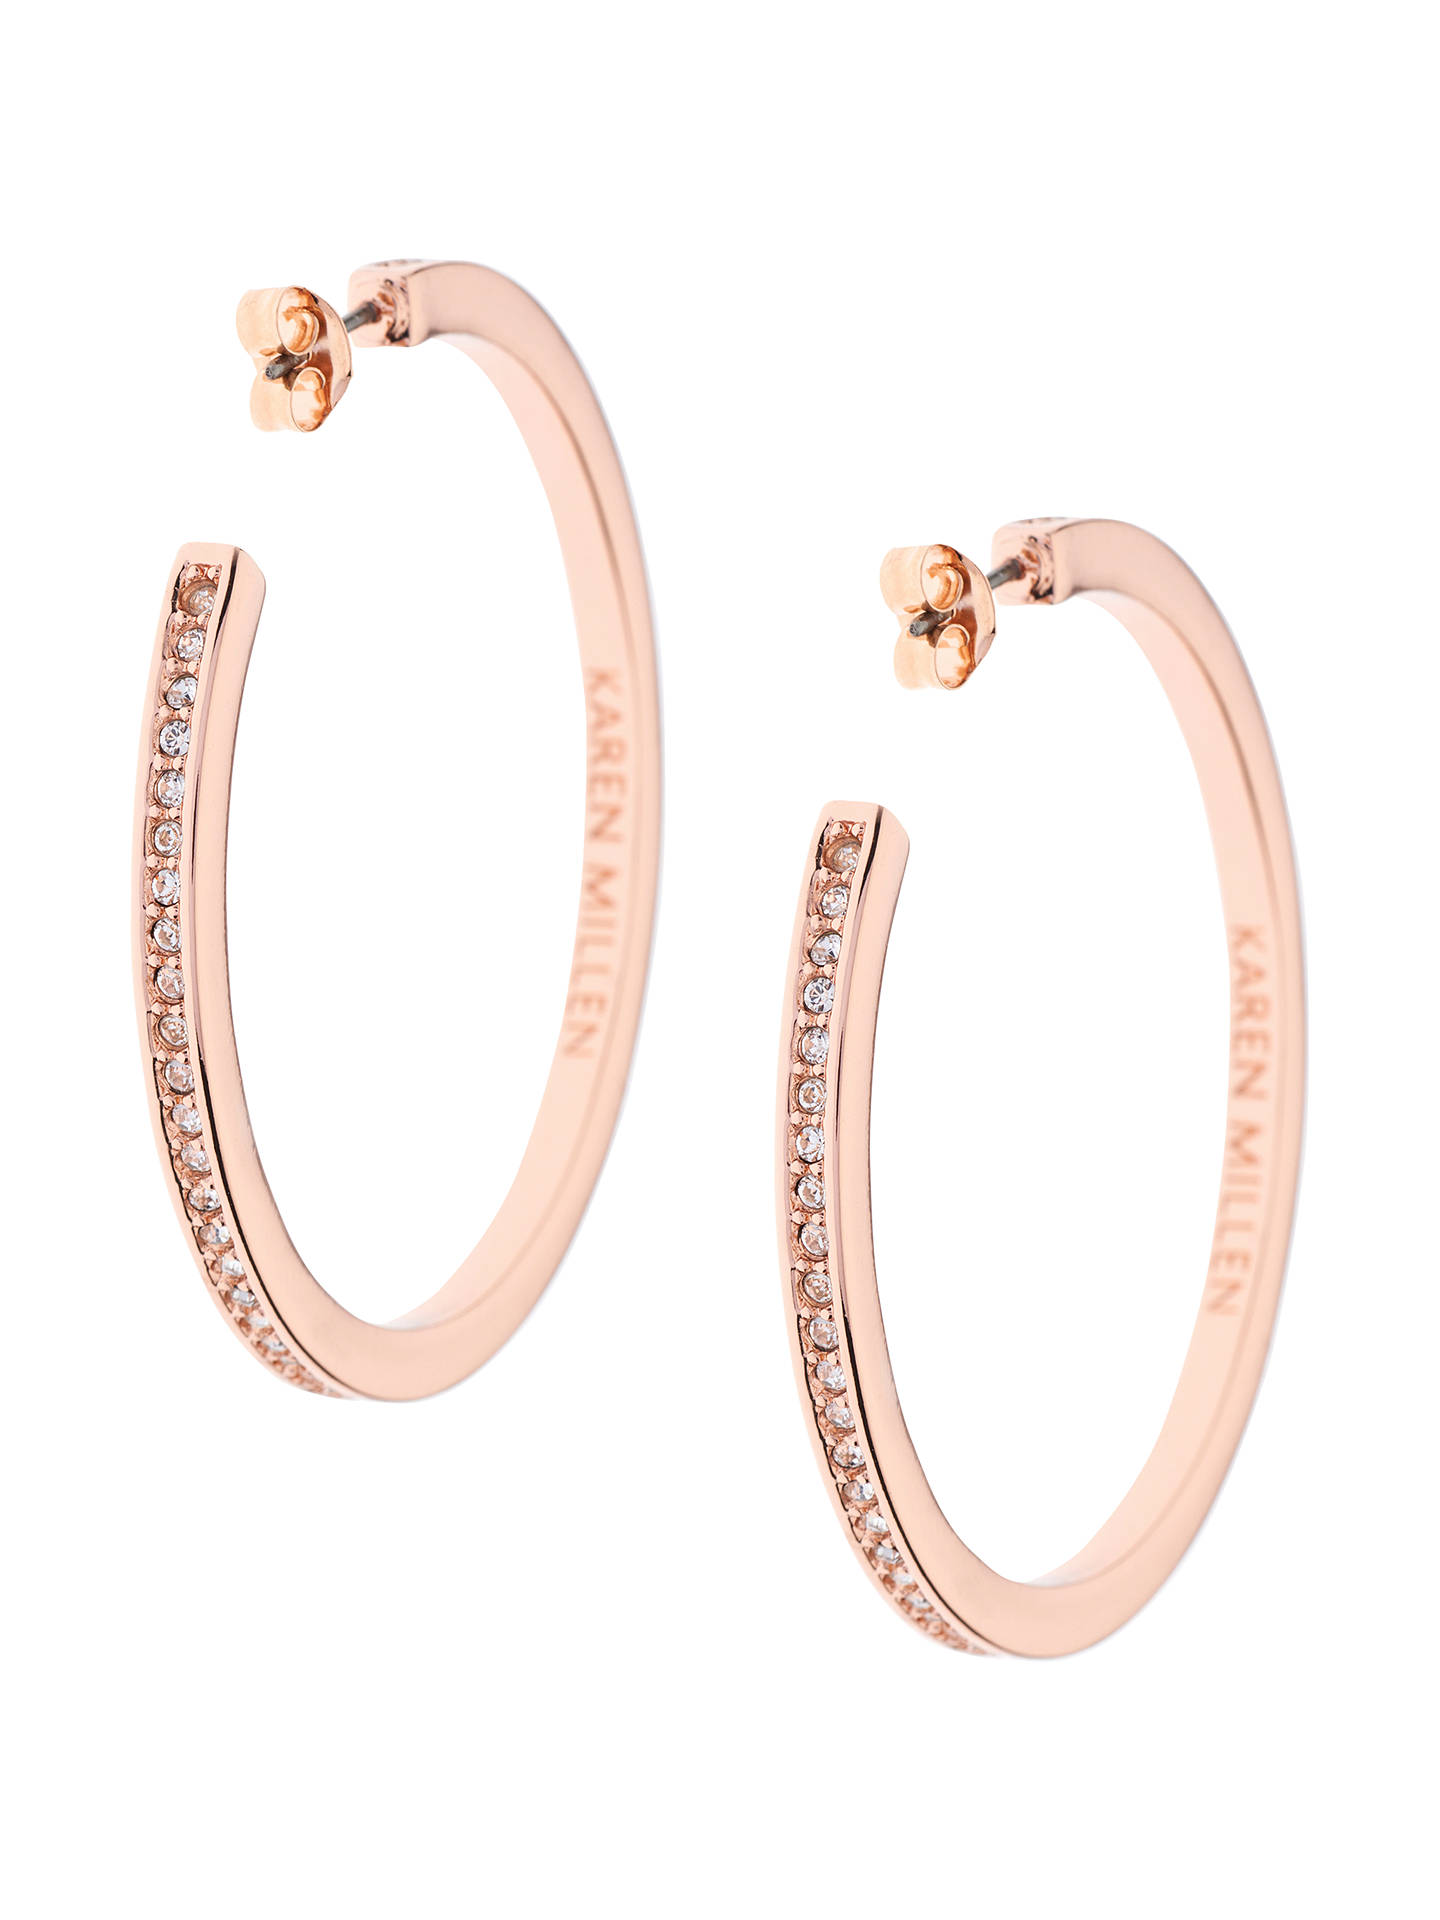 6a60a3eaf302 Buy Karen Millen Large Crystal Hoop Earrings